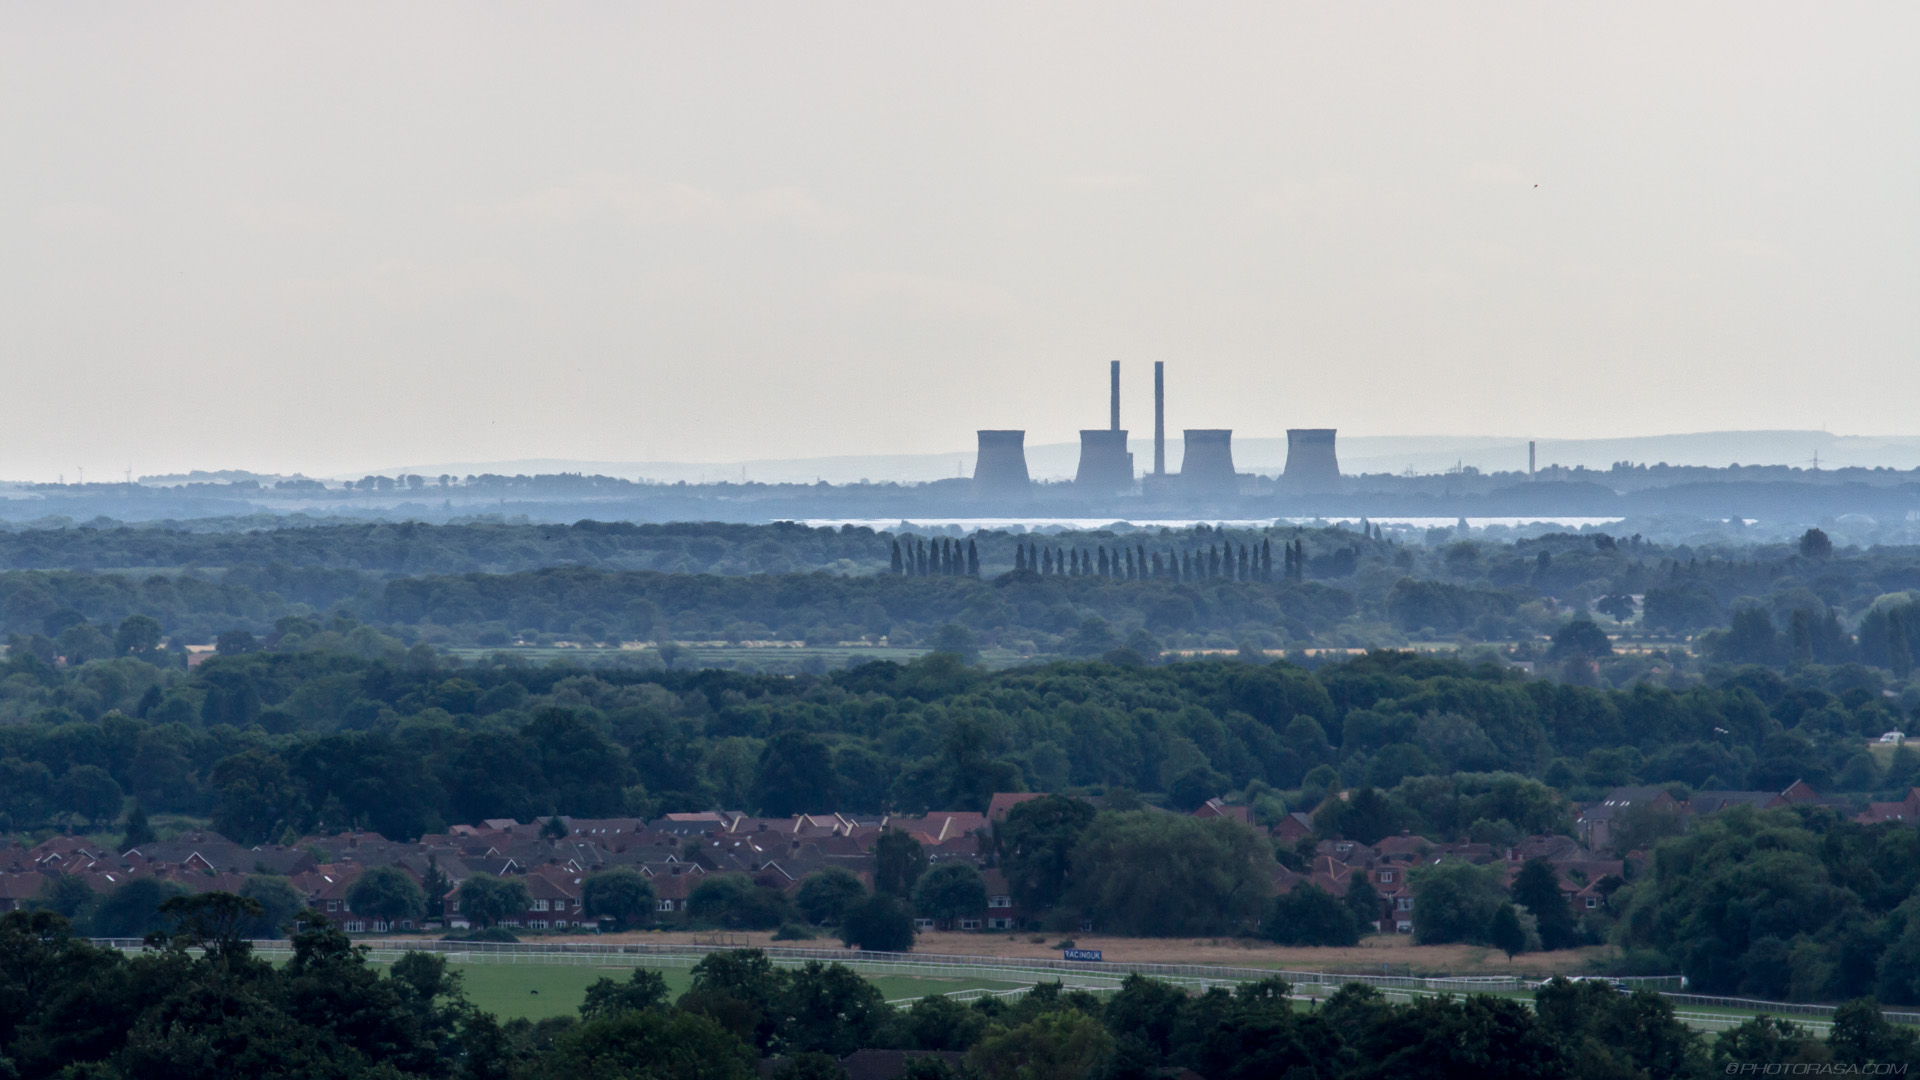 https://photorasa.com/yorkminster-cathedral/ferrybridge-power-station-from-yorkminster-tower/